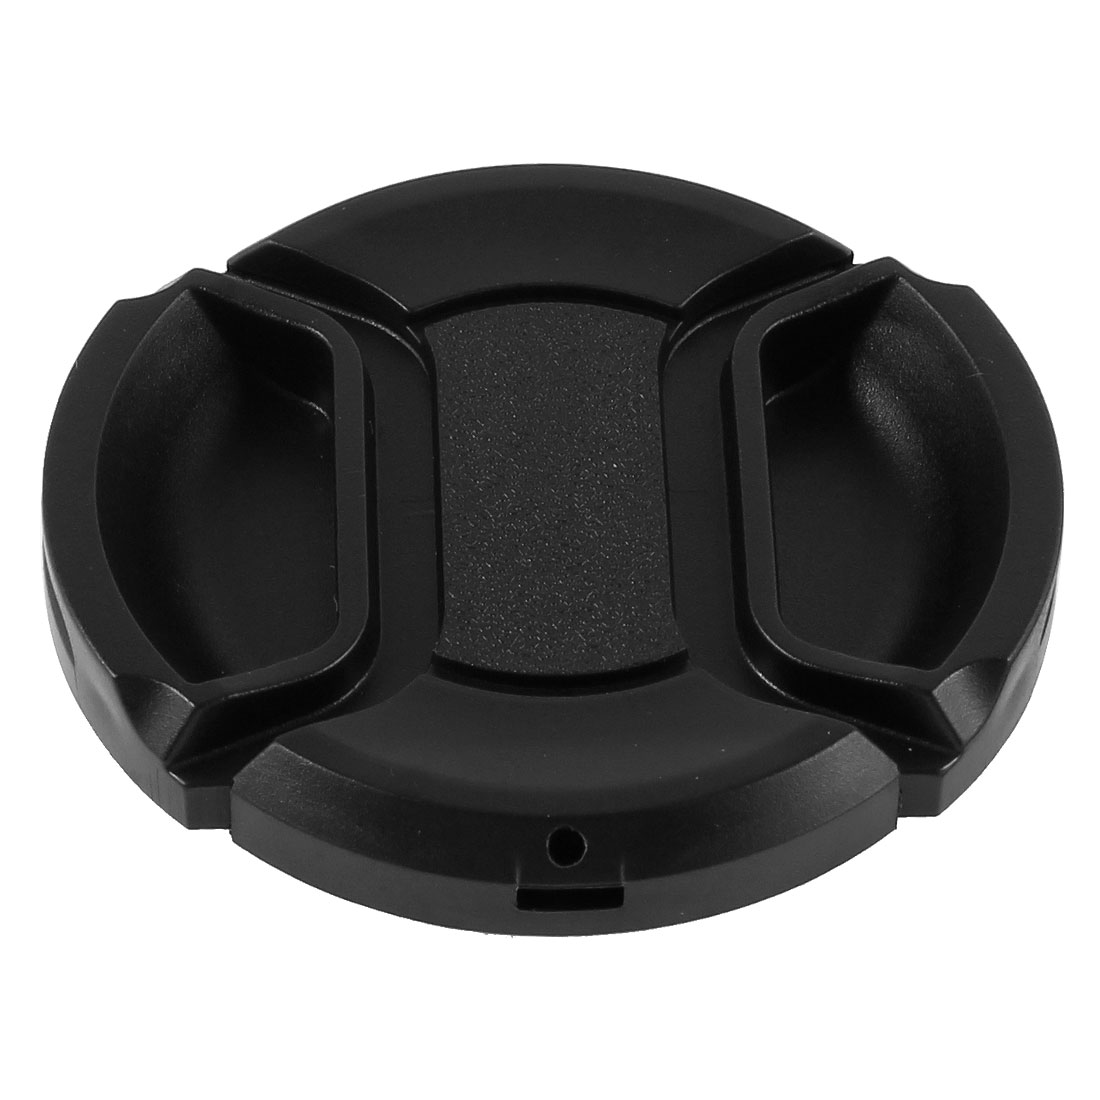 Univeral 49mm Center Pinch Front Lens Cap Cover for DSLR Camera